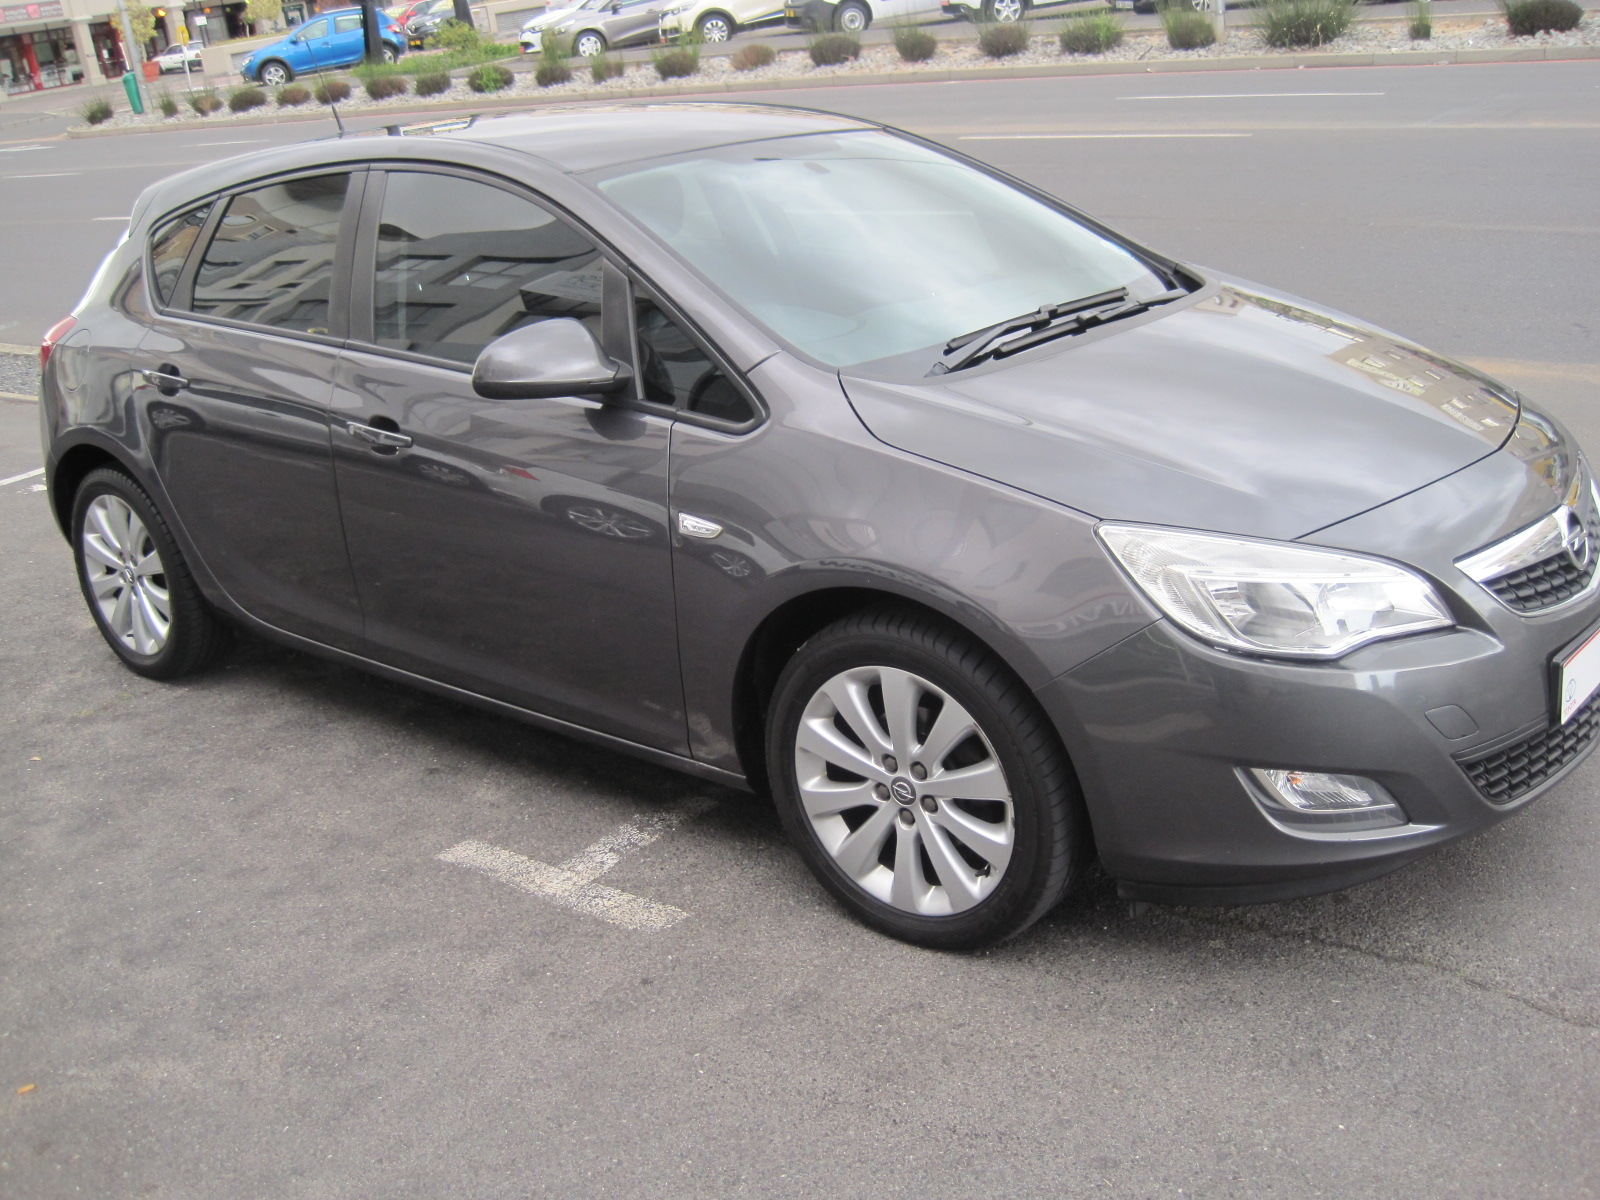 manual cars for sale gumtree